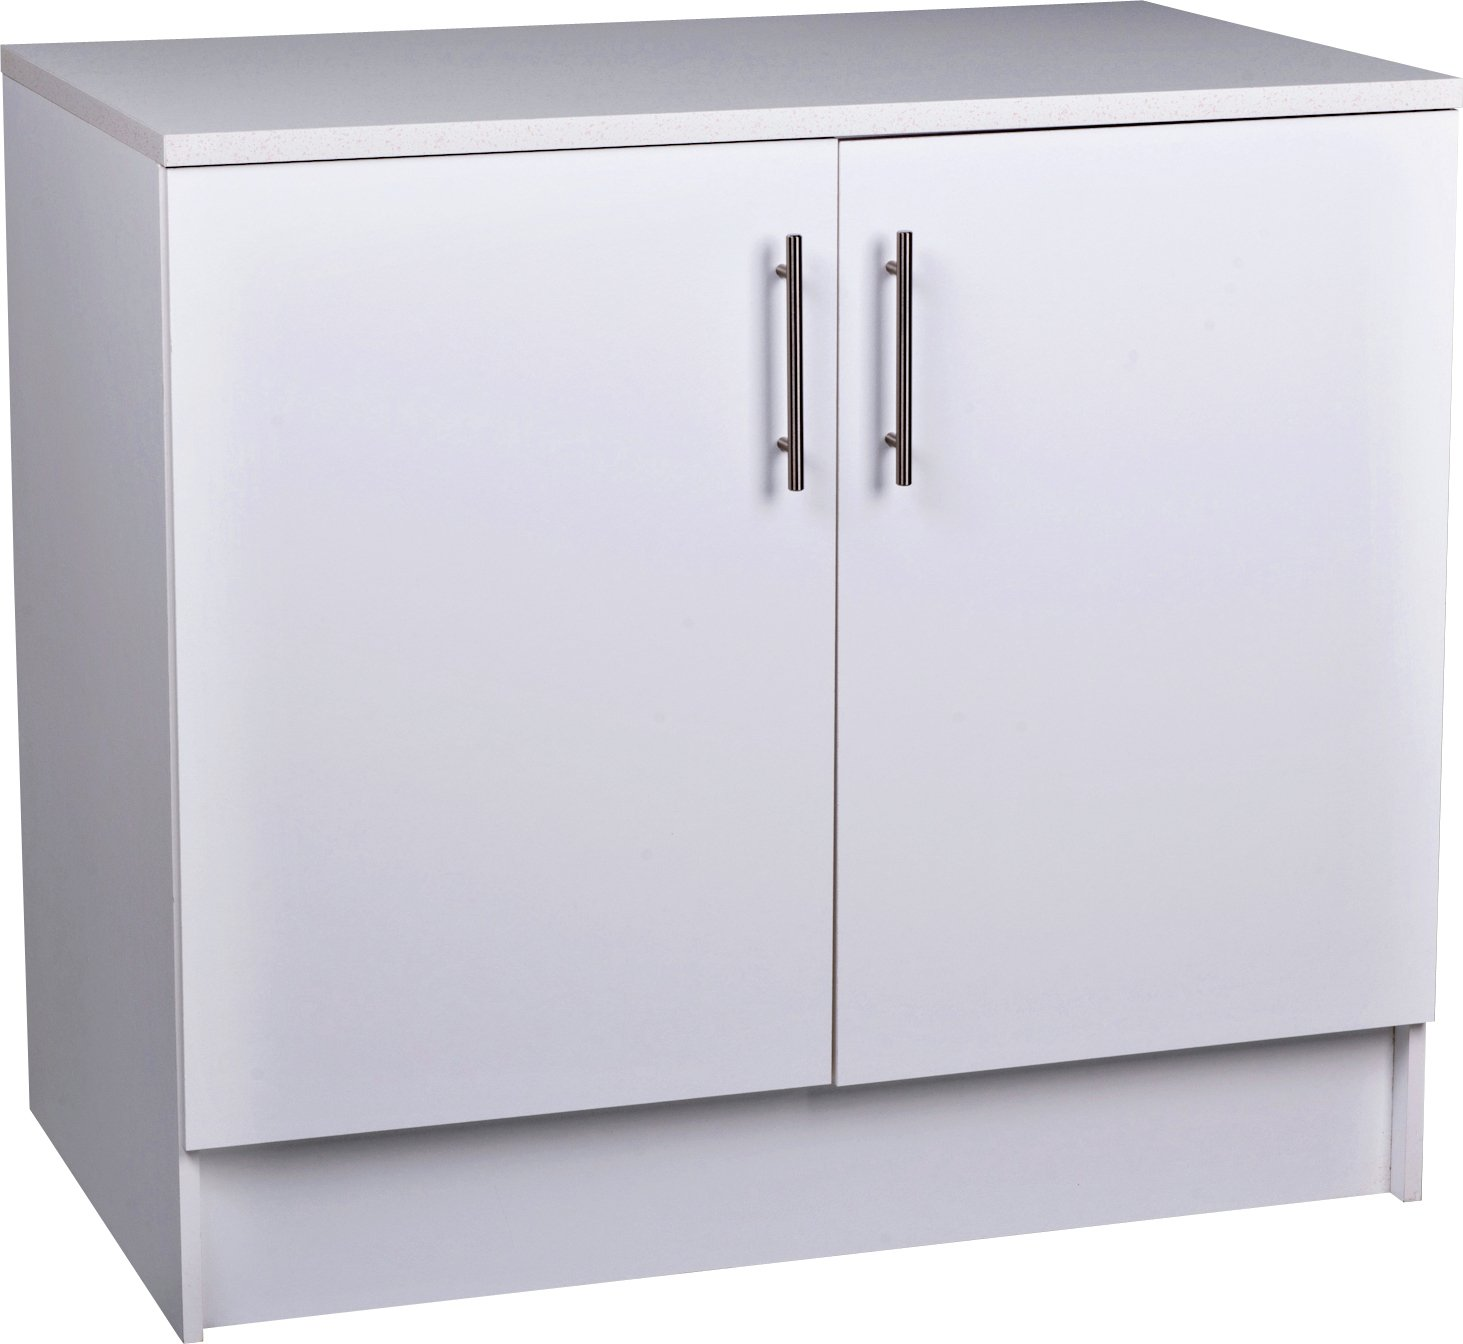 Kitchen company kitchen furniture fitted kitchens for Kitchen cabinets 1000mm